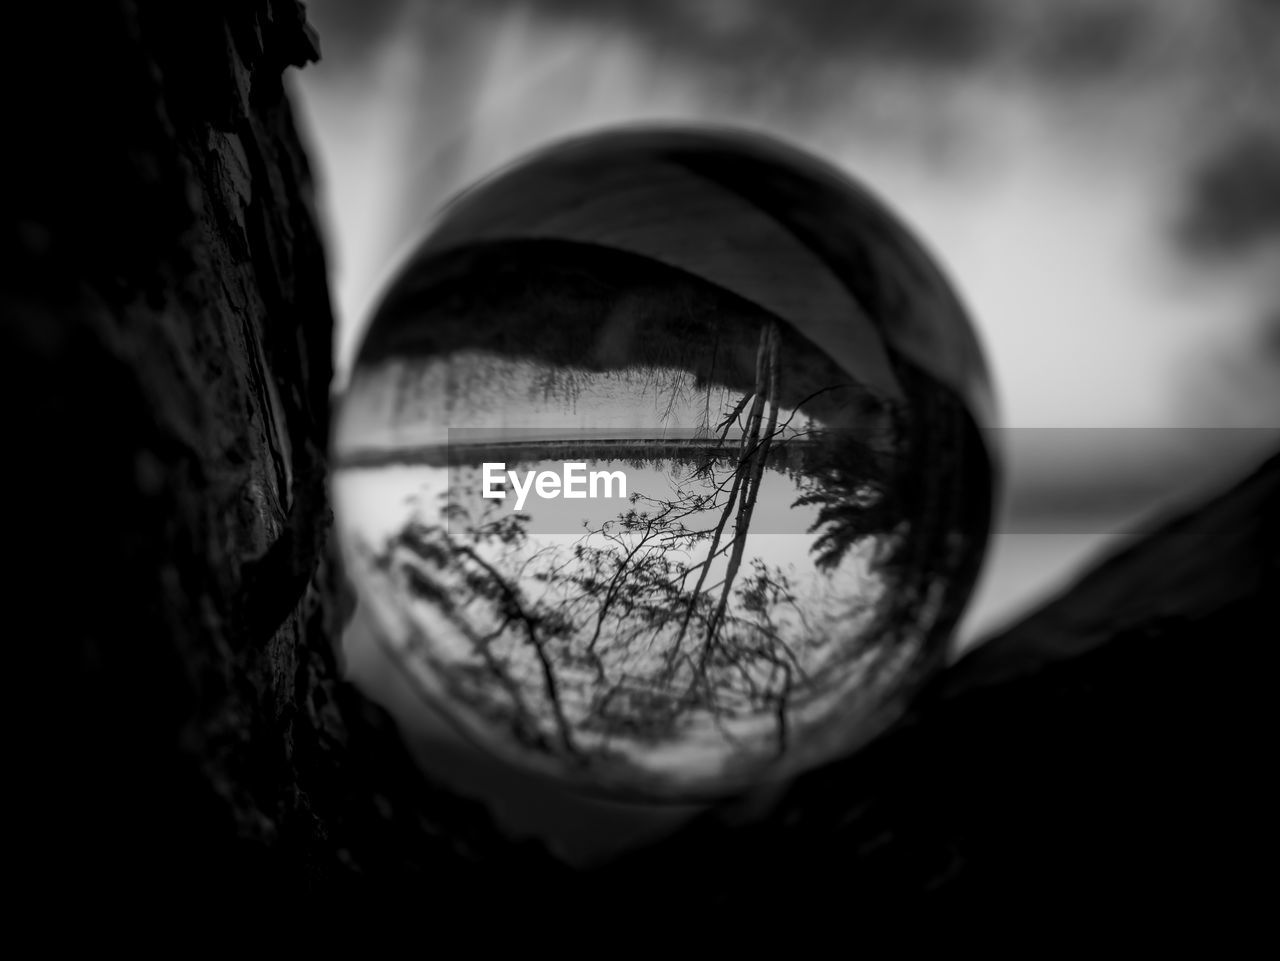 reflection, close-up, selective focus, nature, focus on foreground, no people, outdoors, day, tree, geometric shape, sky, body part, circle, single object, sphere, glass - material, still life, shape